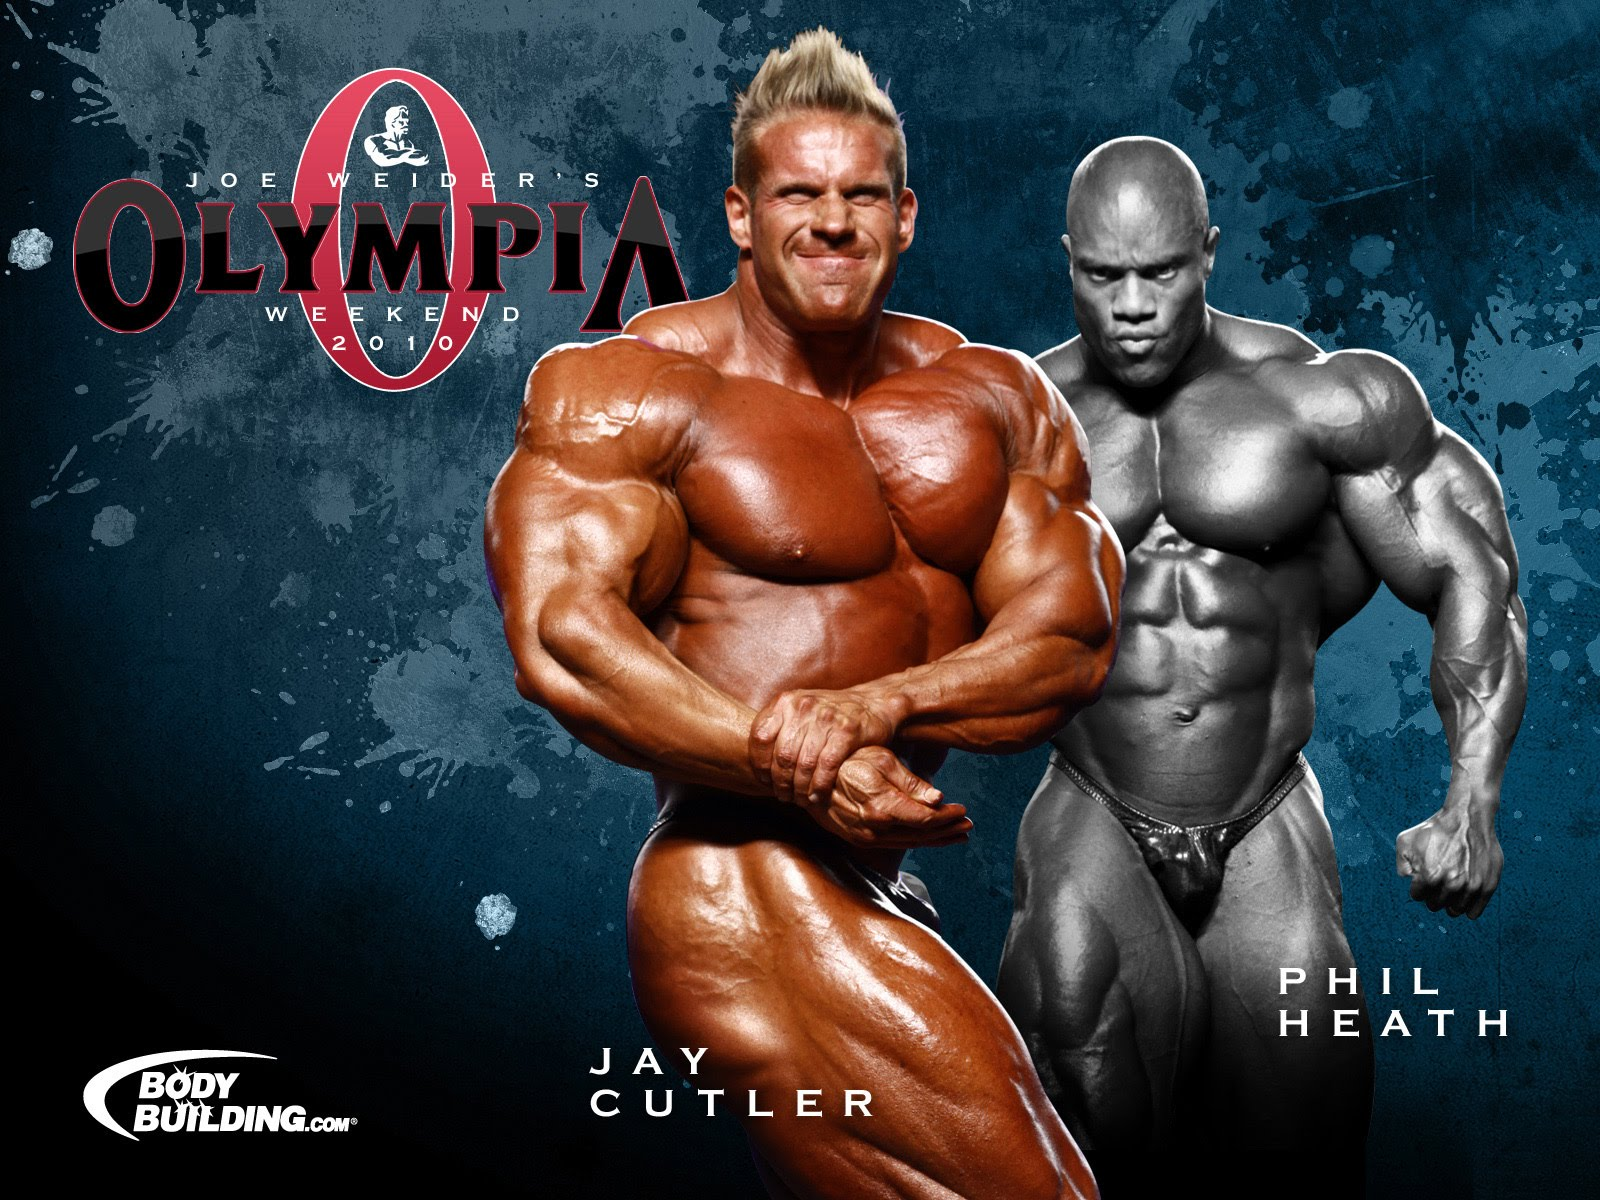 Mr Olympia 2010 Wallpaper